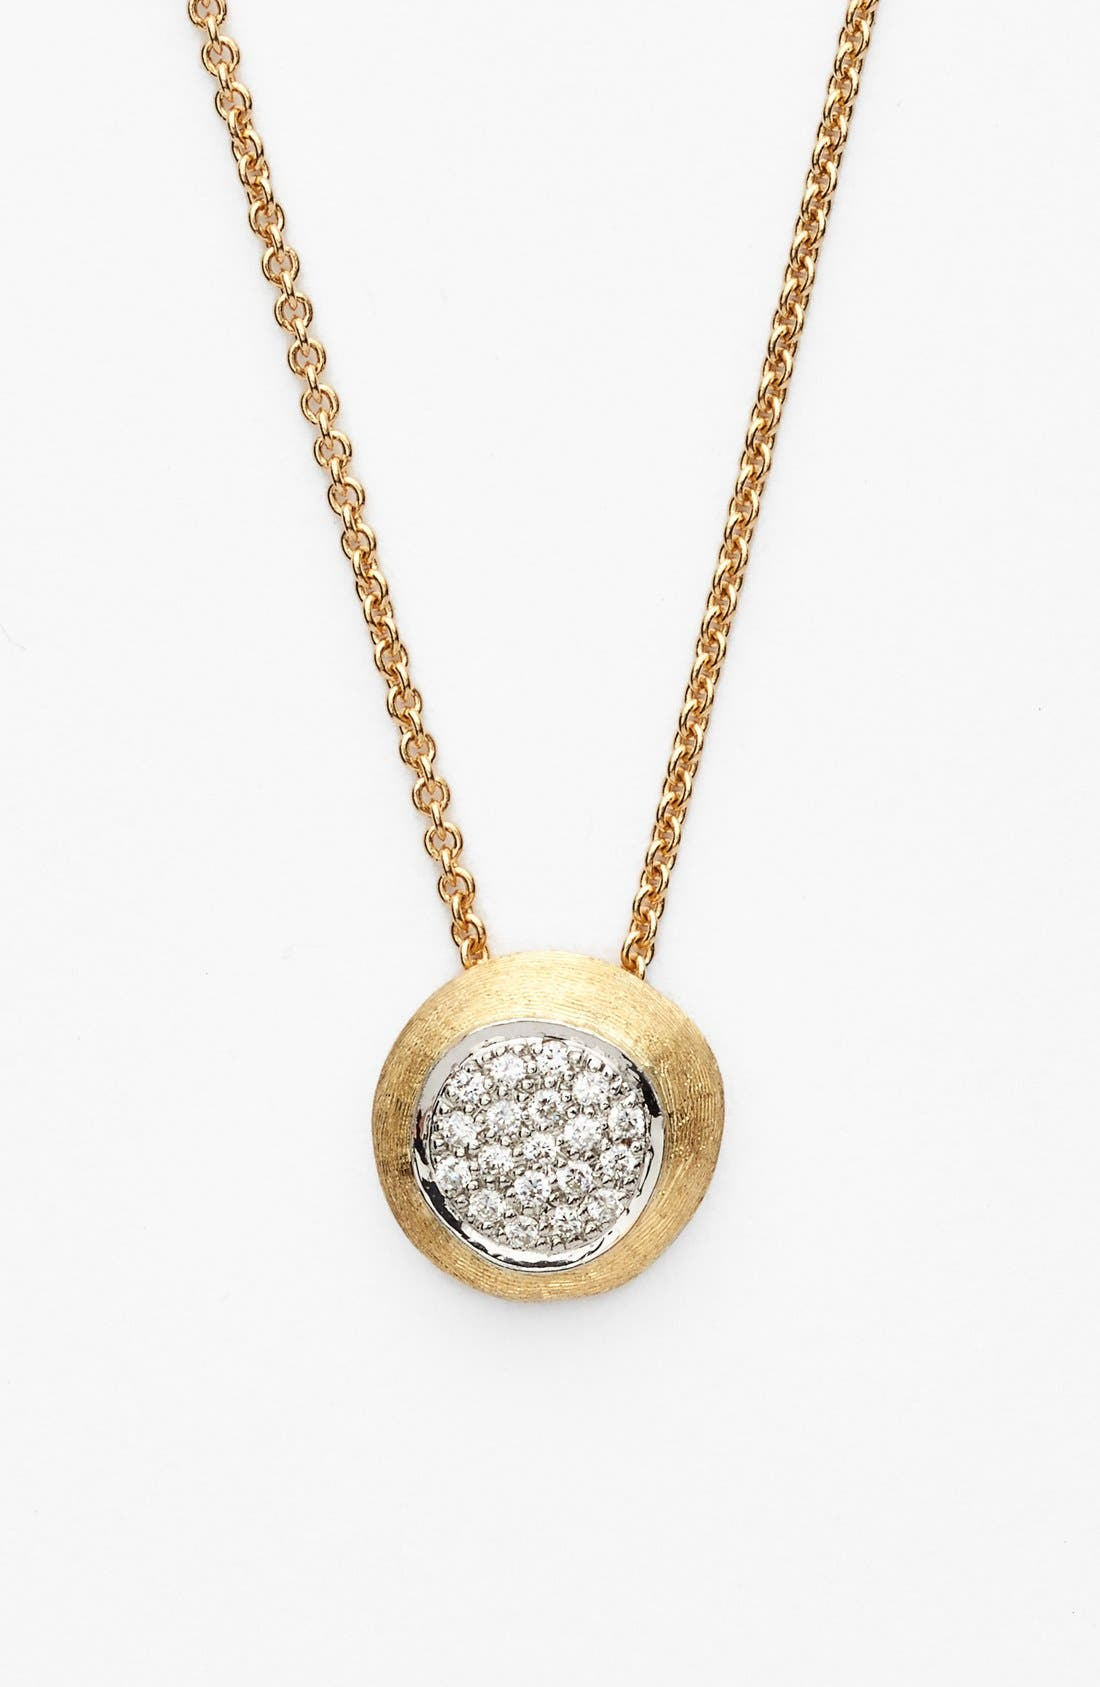 Main Image - Marco Bicego 'Delicati - Jaipur' Diamond Pendant Necklace